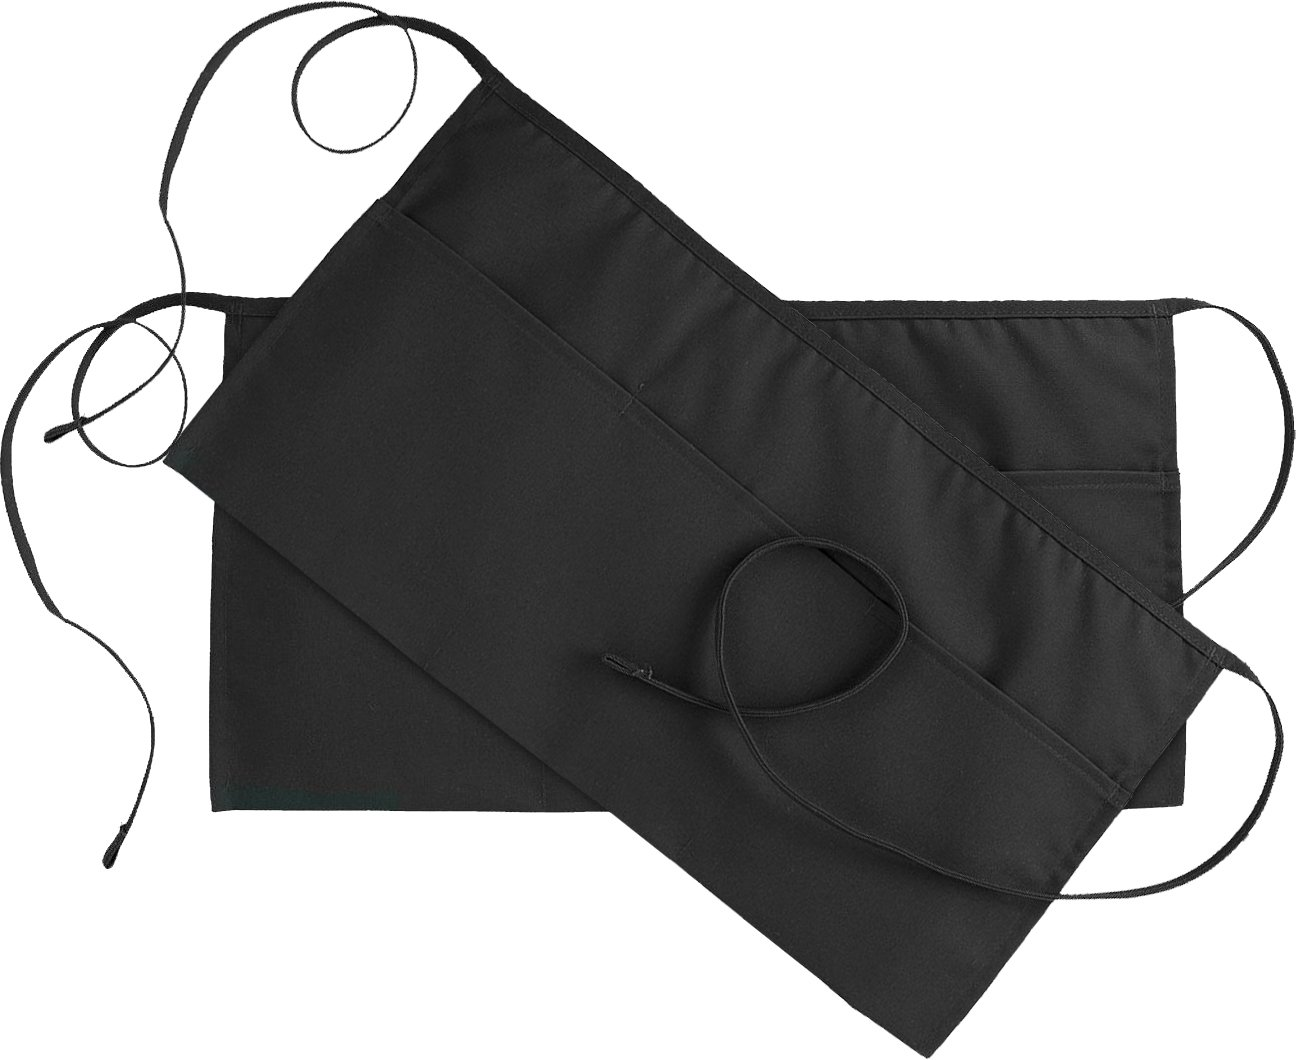 Utopia Wear 3 Pockets Waist Apron (Set of 2, Black, 24 x 12 inches) - Restaurant Half Aprons Men, Women, Chef, Baker, Servers, Waitress, Waiter, Bartender, Craftsmen and Money Apron, Check Holder